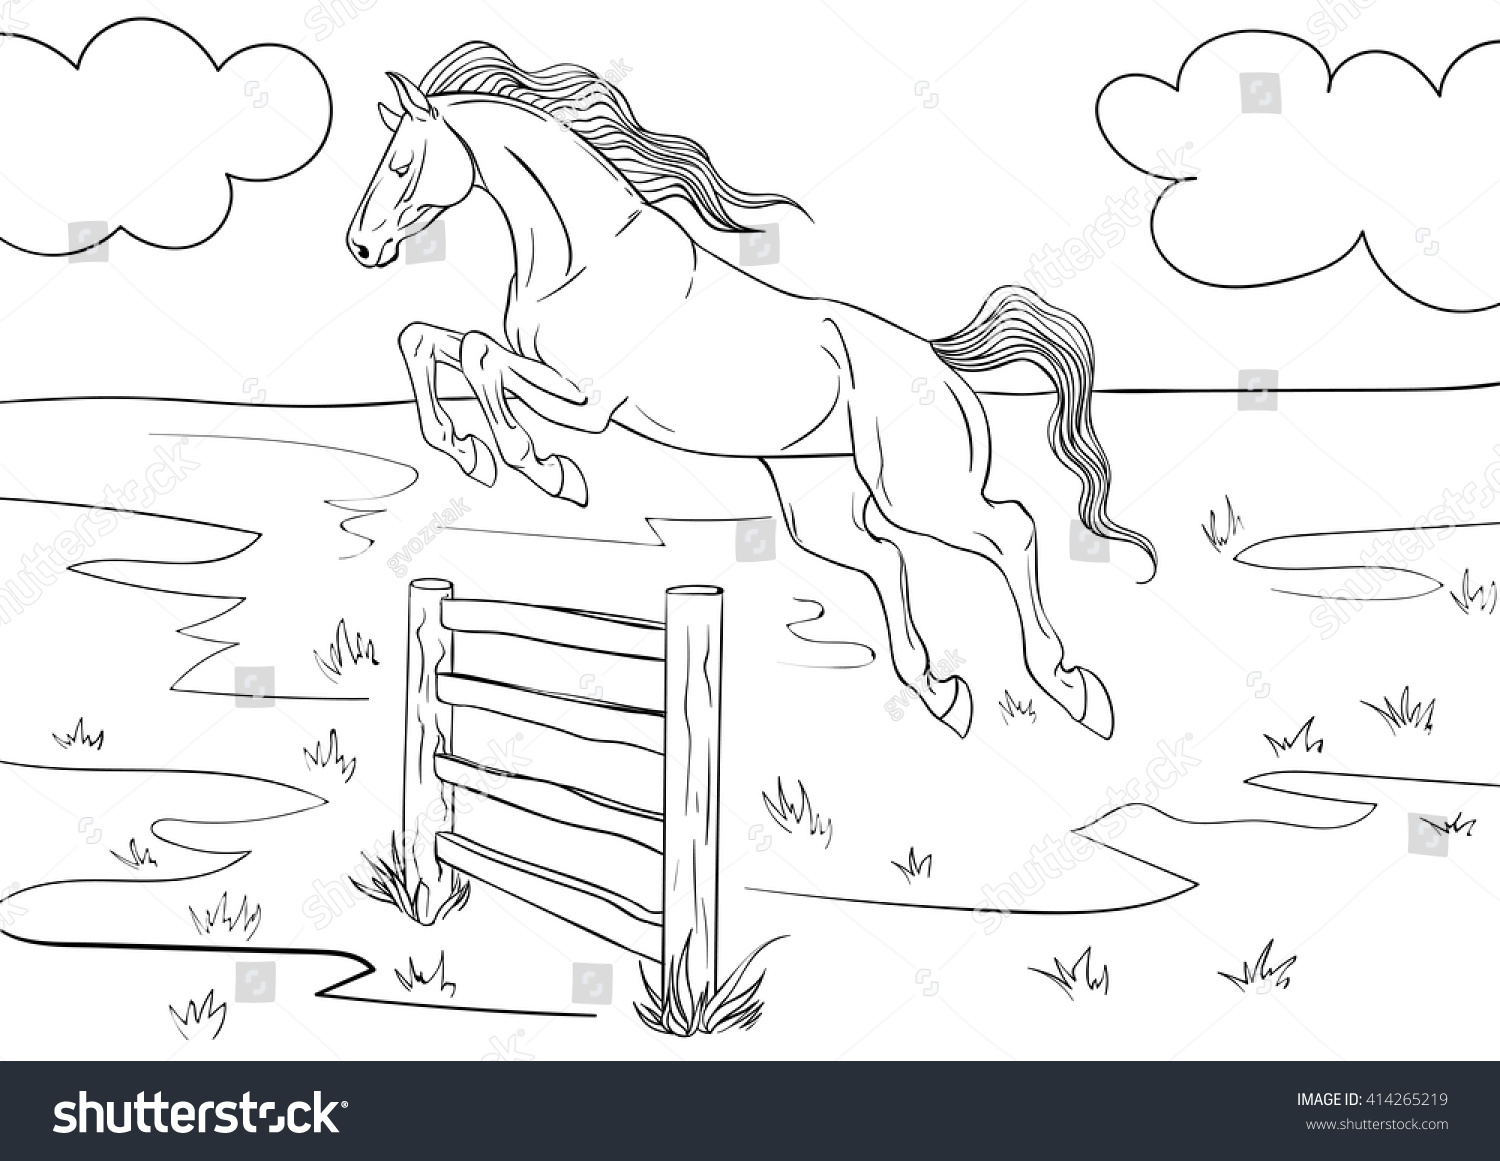 Coloring book horses - Coloring Book With A Horse And Background